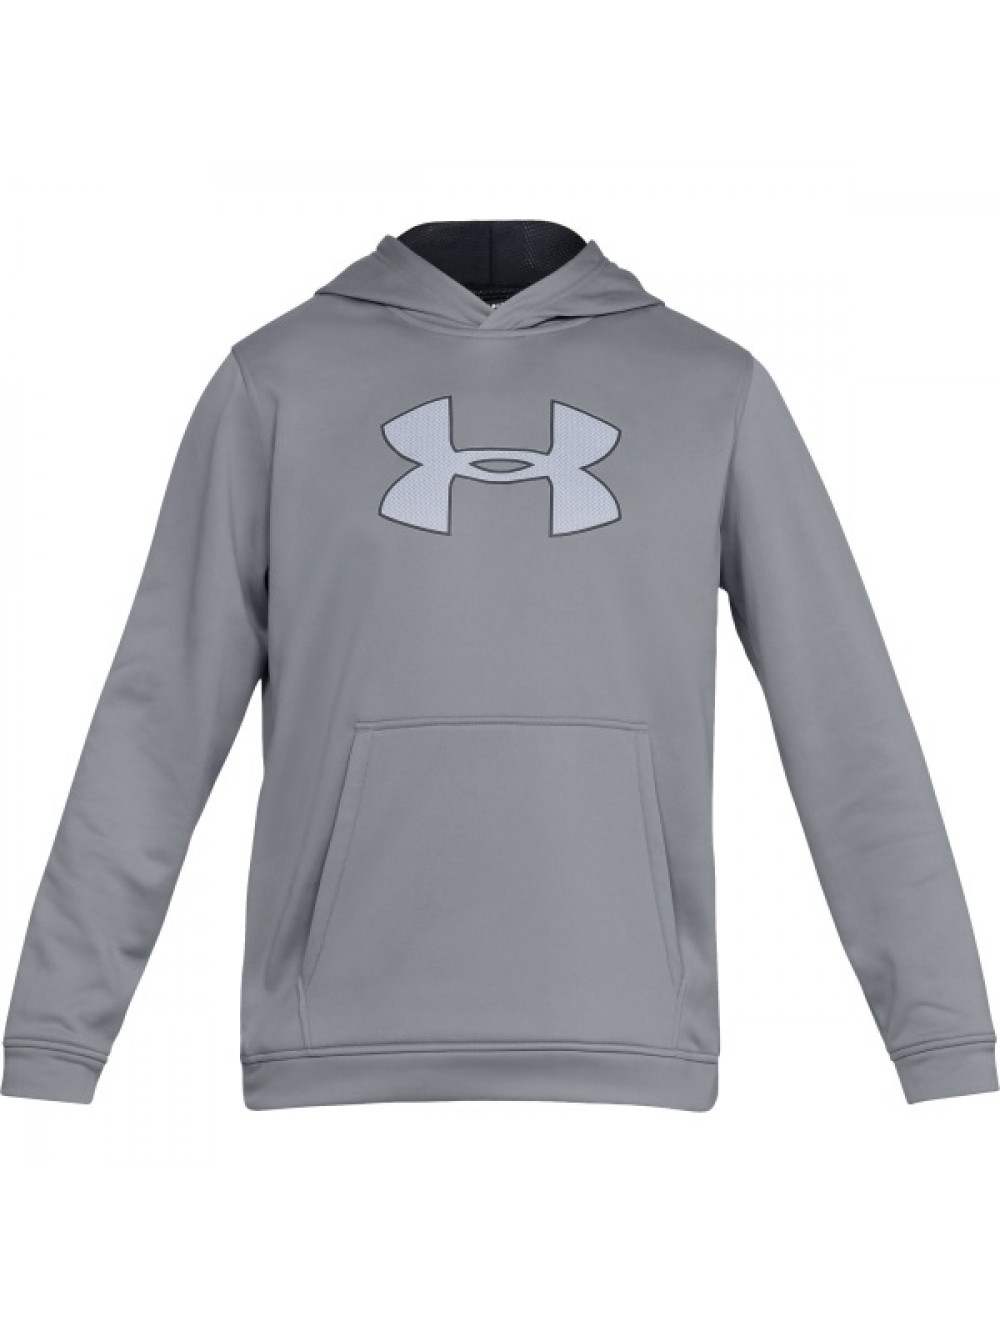 new product fbec0 0c95c Herren Sweatshirt Under Armour Performance Fleece Graphic Hoody Grau